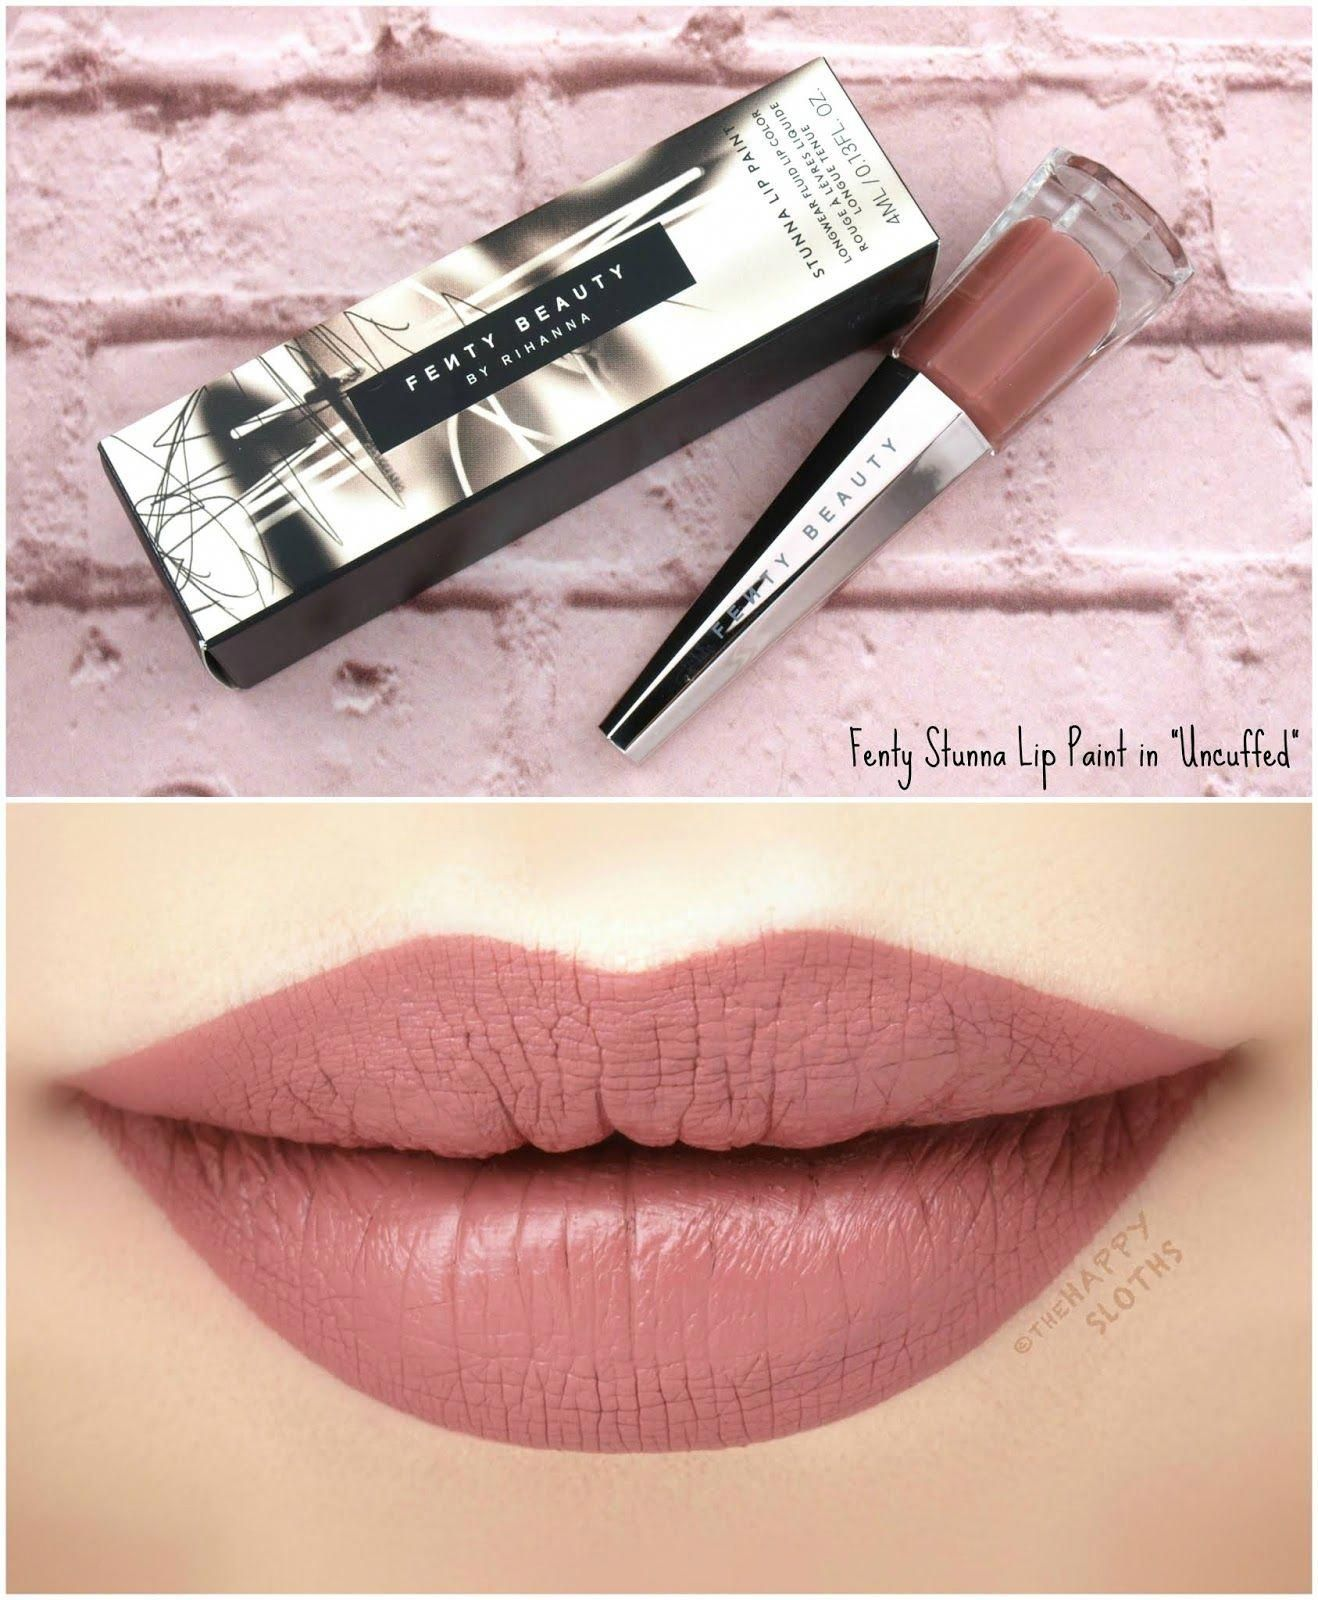 Fenty Beauty By Rihanna New Shades Stunna Lip Paint In Uncuffed Review And Swatches Makeupstyles Beauty Lipstick Beauty Makeup Lip Paint